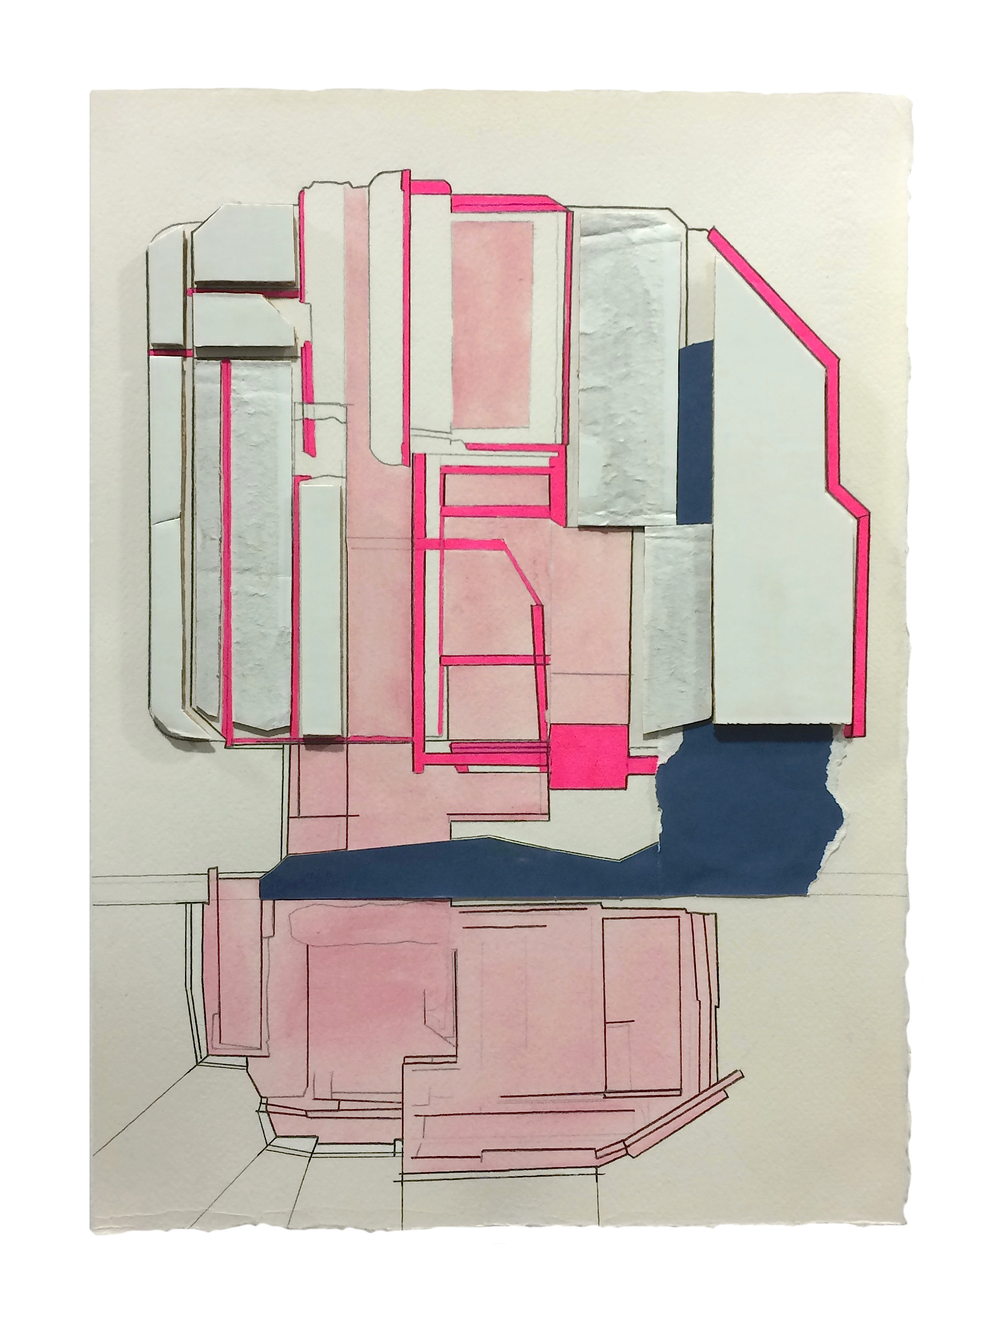 Residence  , 2016  Collage, gouache, marker, graphite on paper  13.75 x 9.75 inches